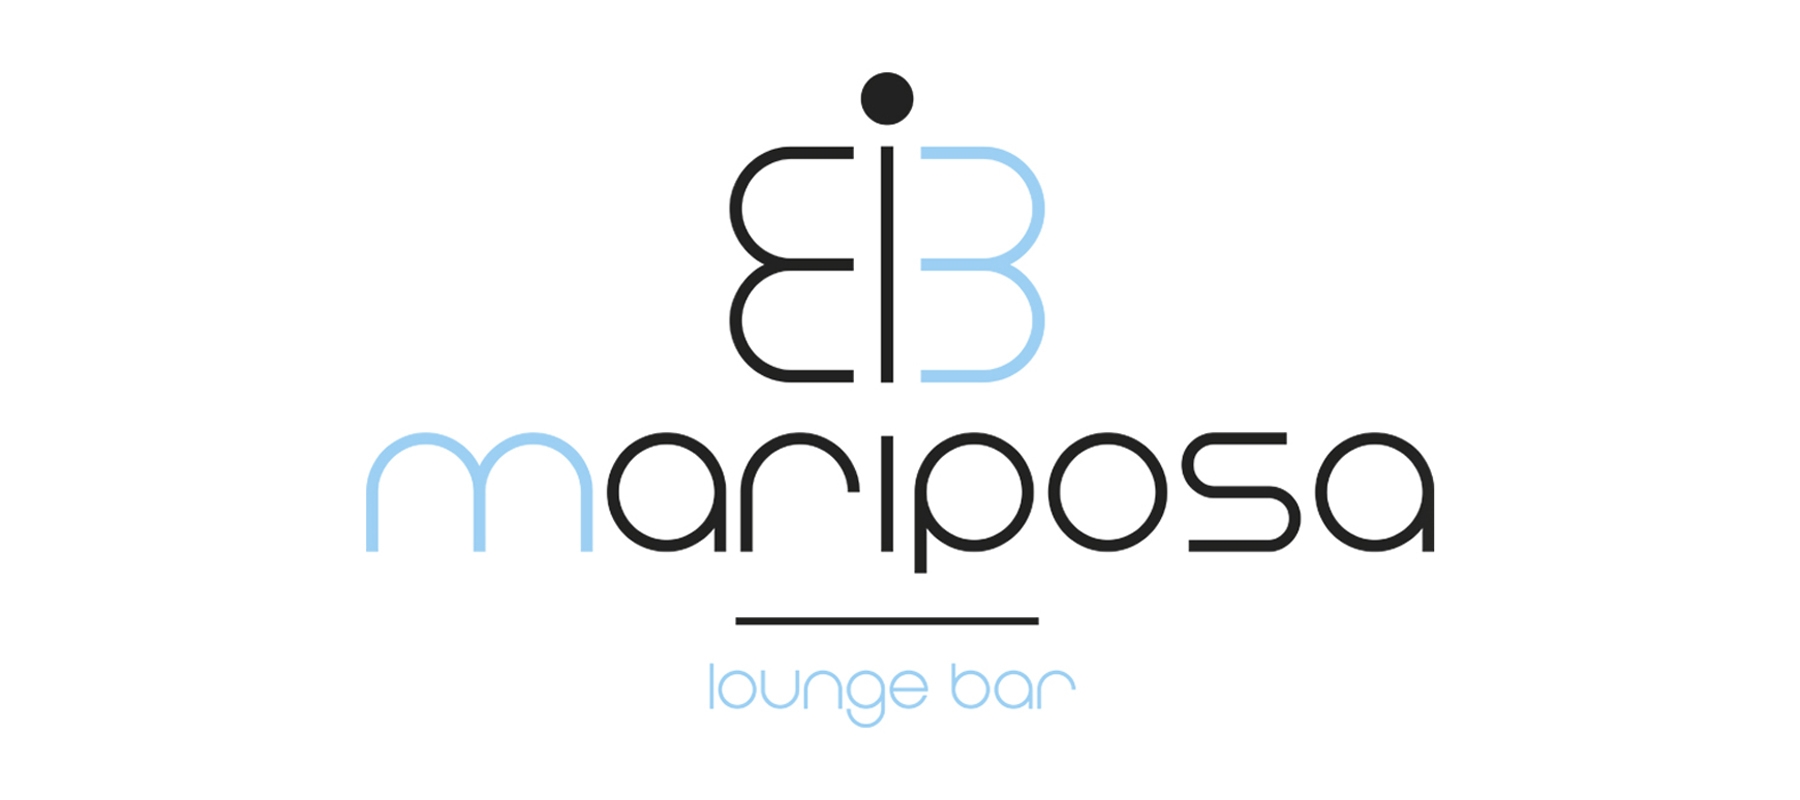 Logo Mariposa Lounge Bar